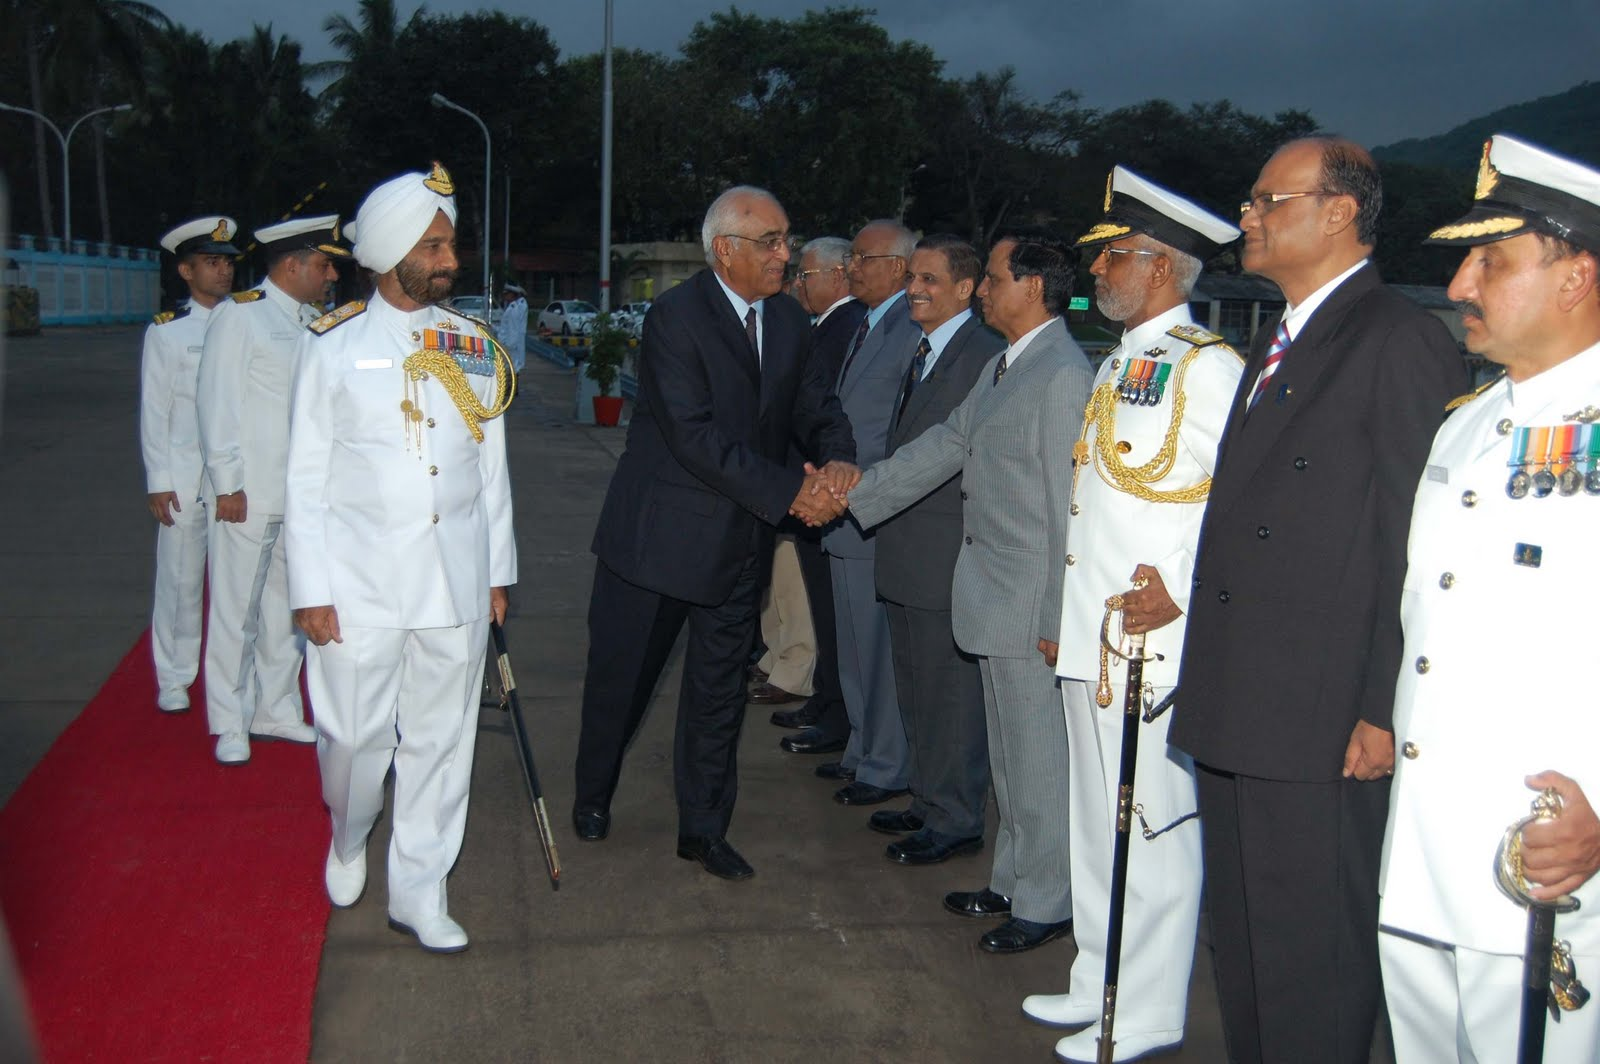 chindits in decommissions the last foxtrot submarine ins vagli the n navy decommissioned one of her oldest units ins vagli in a solemn ceremony at the naval dockyard today 09 dec 10 the commissioning commanding